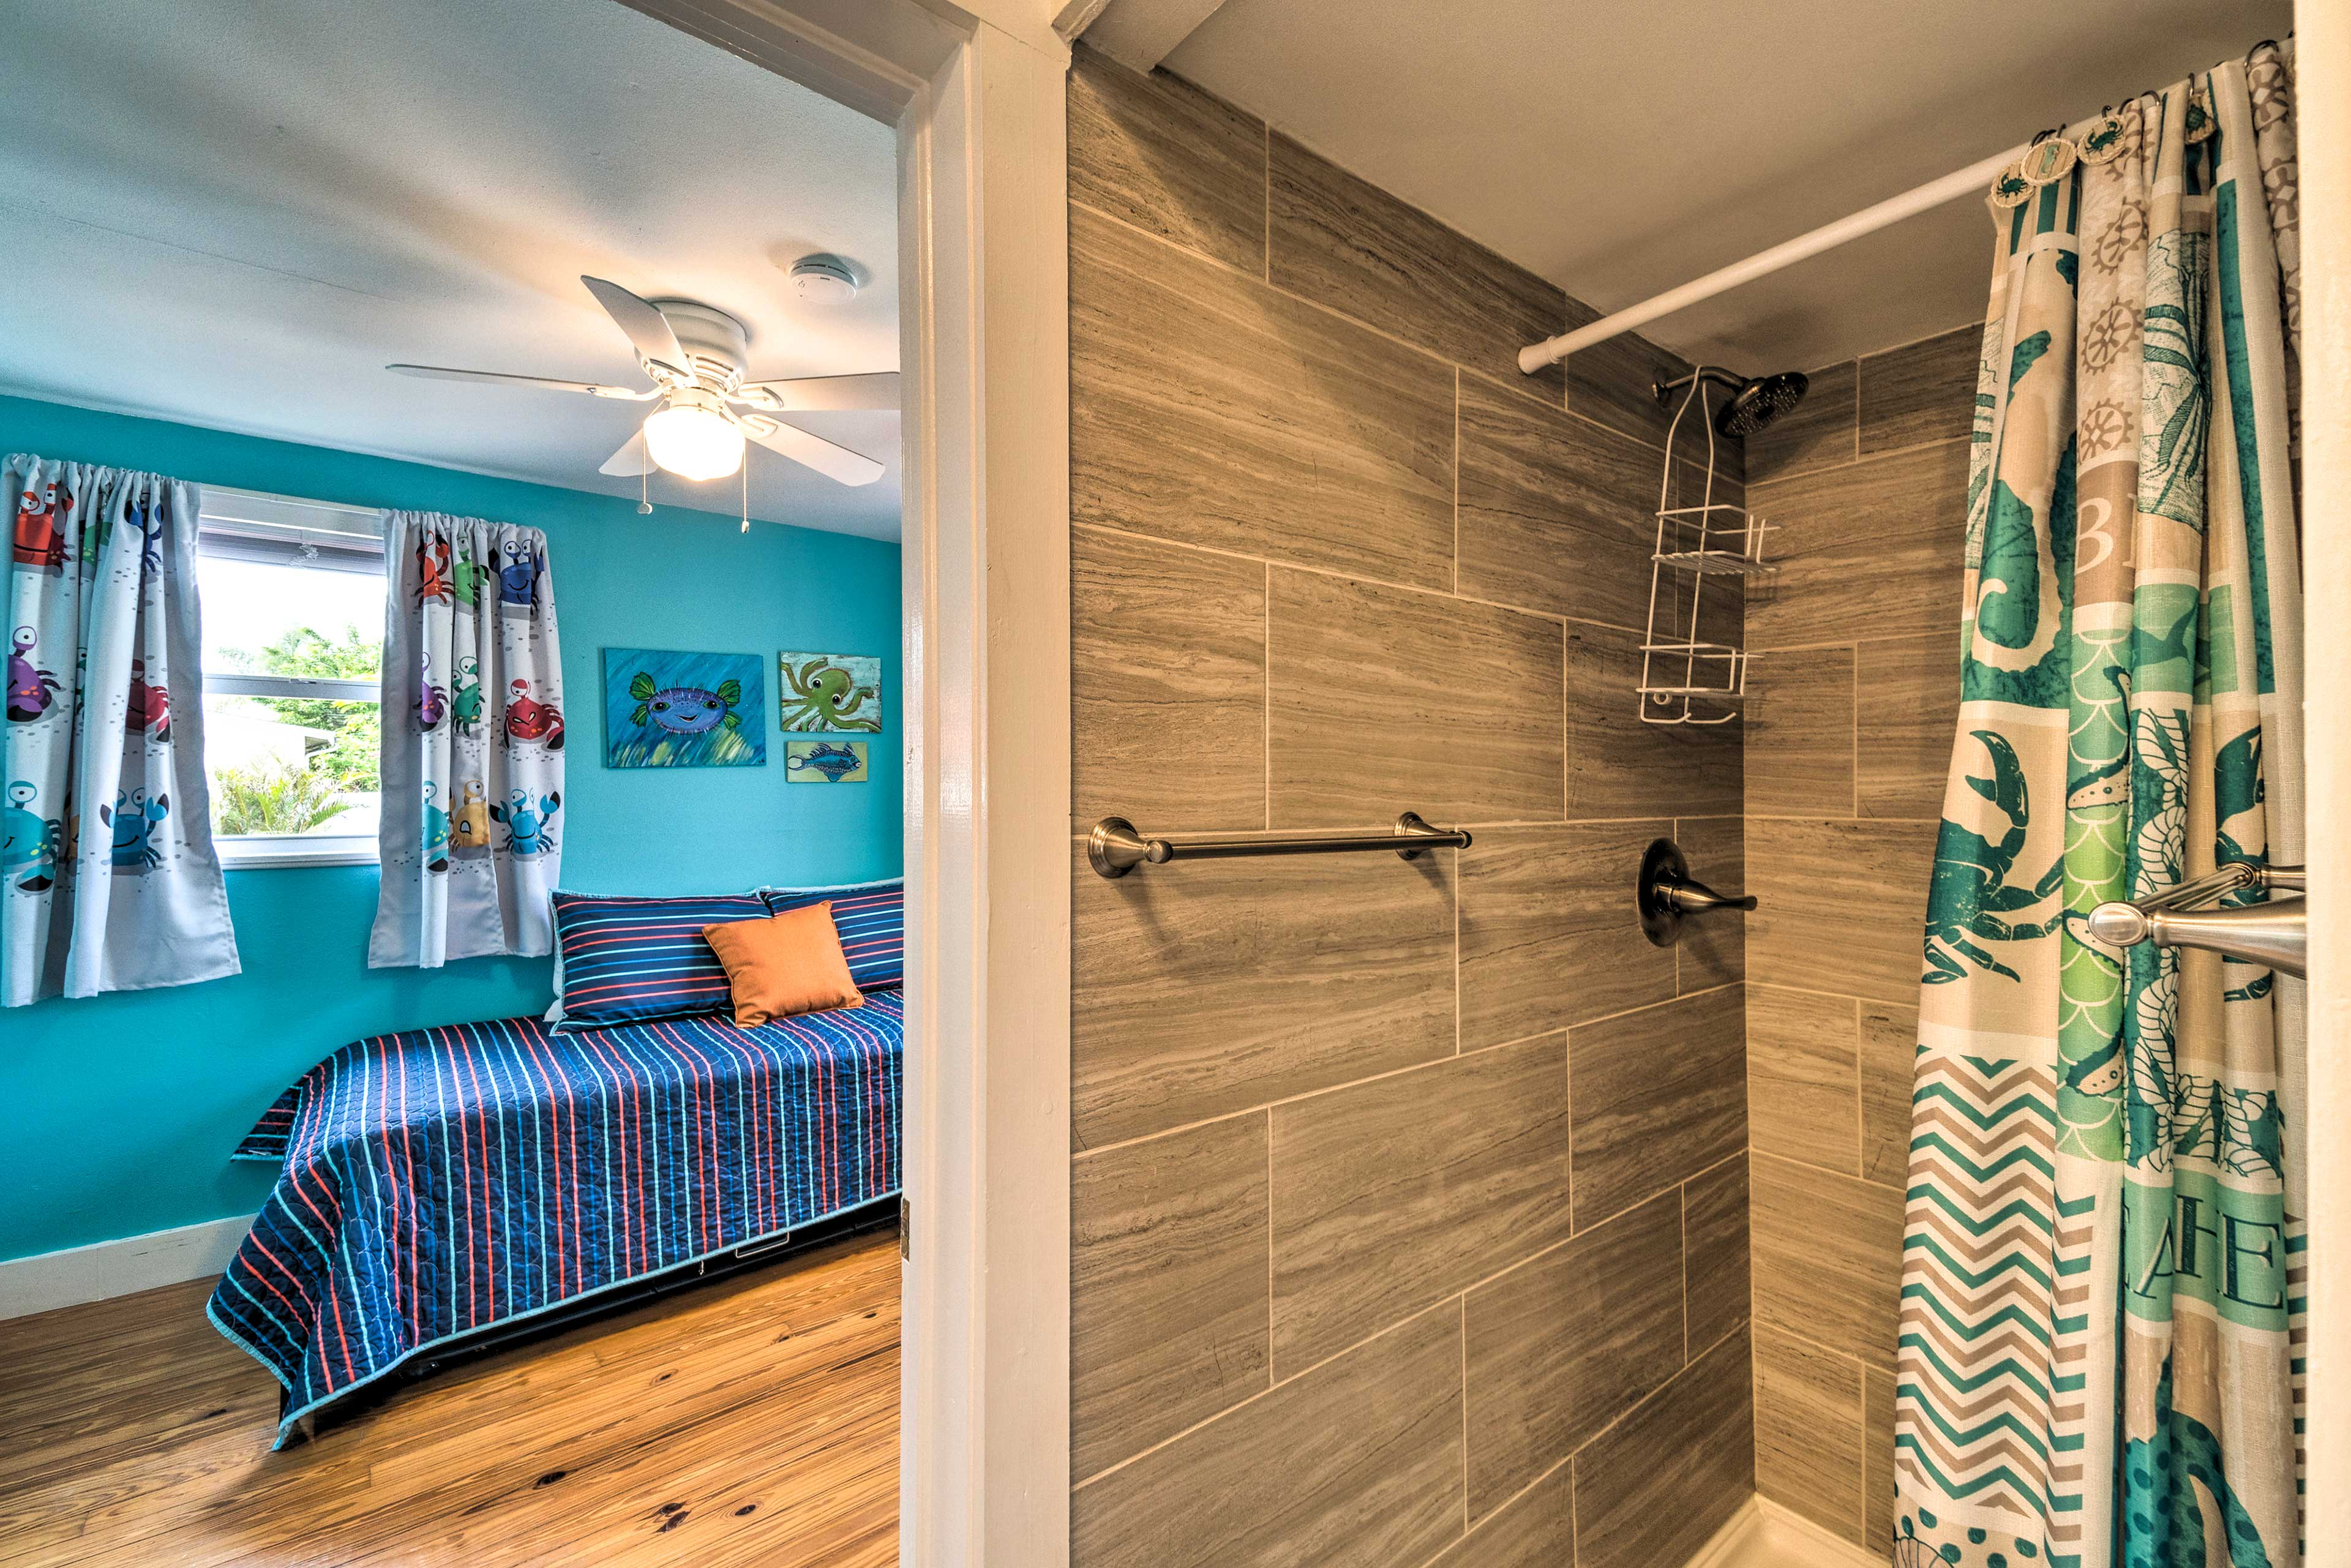 Take a shower and rinse off all the sand and saltwater from the beach.